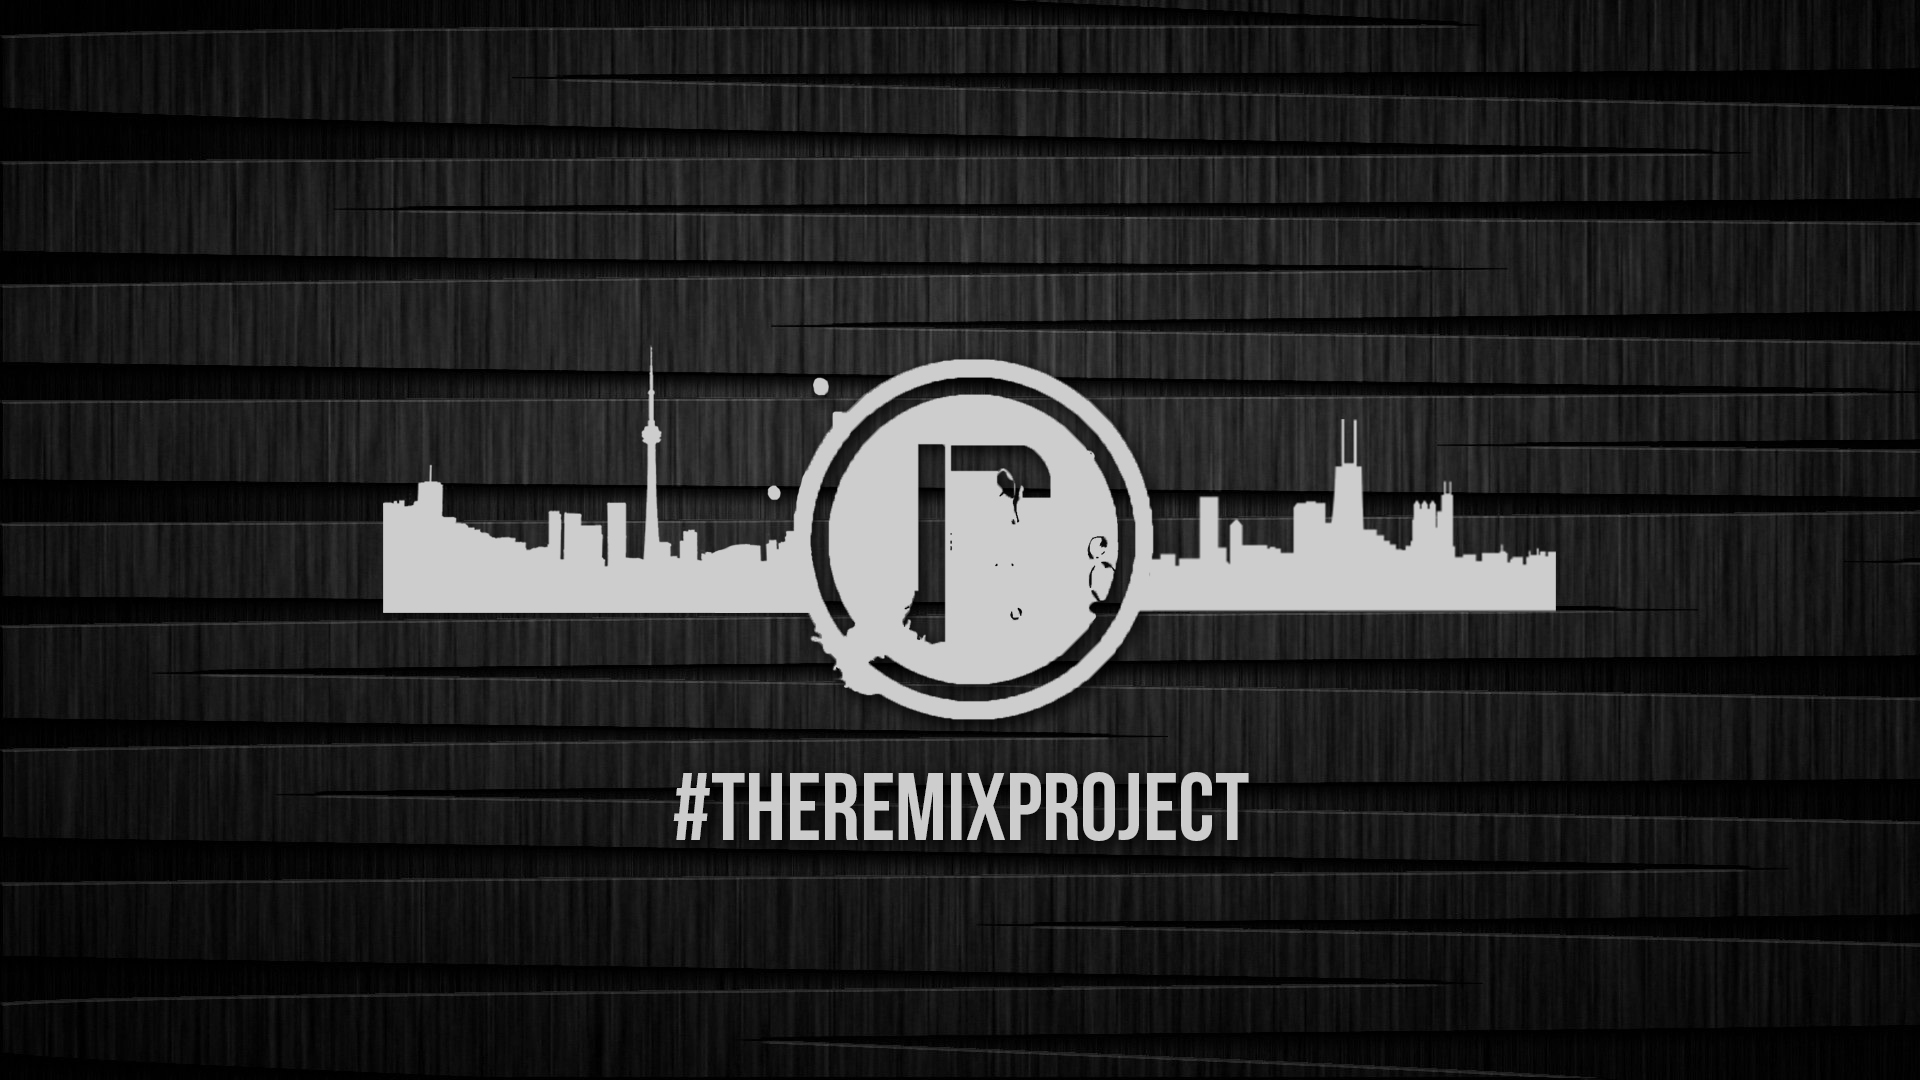 http://https://theremixproject.com